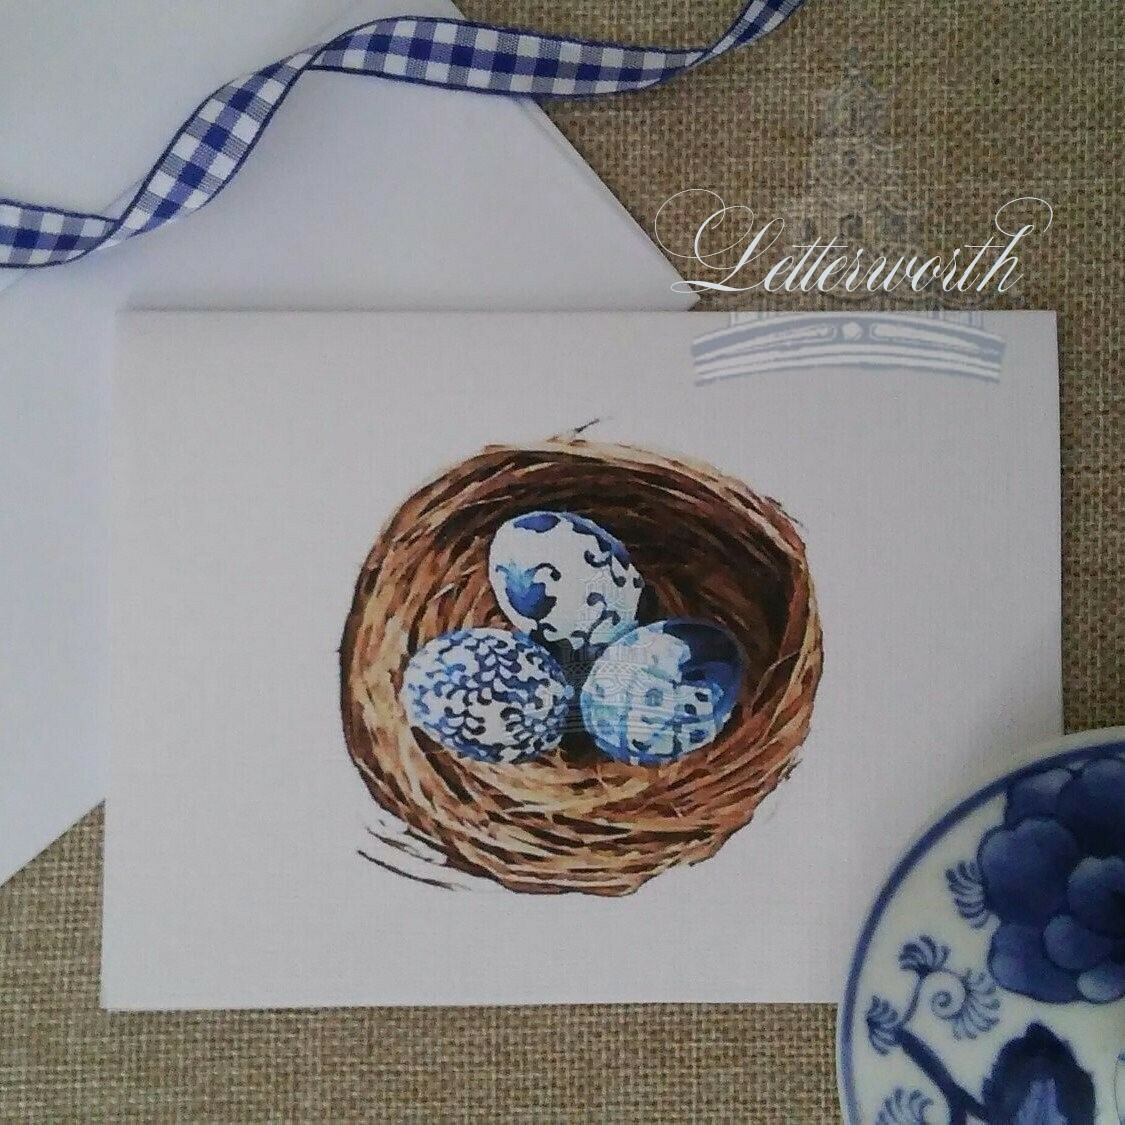 Chinoiserie Bird Nest Note Cards by Letterworth (Set of 8)